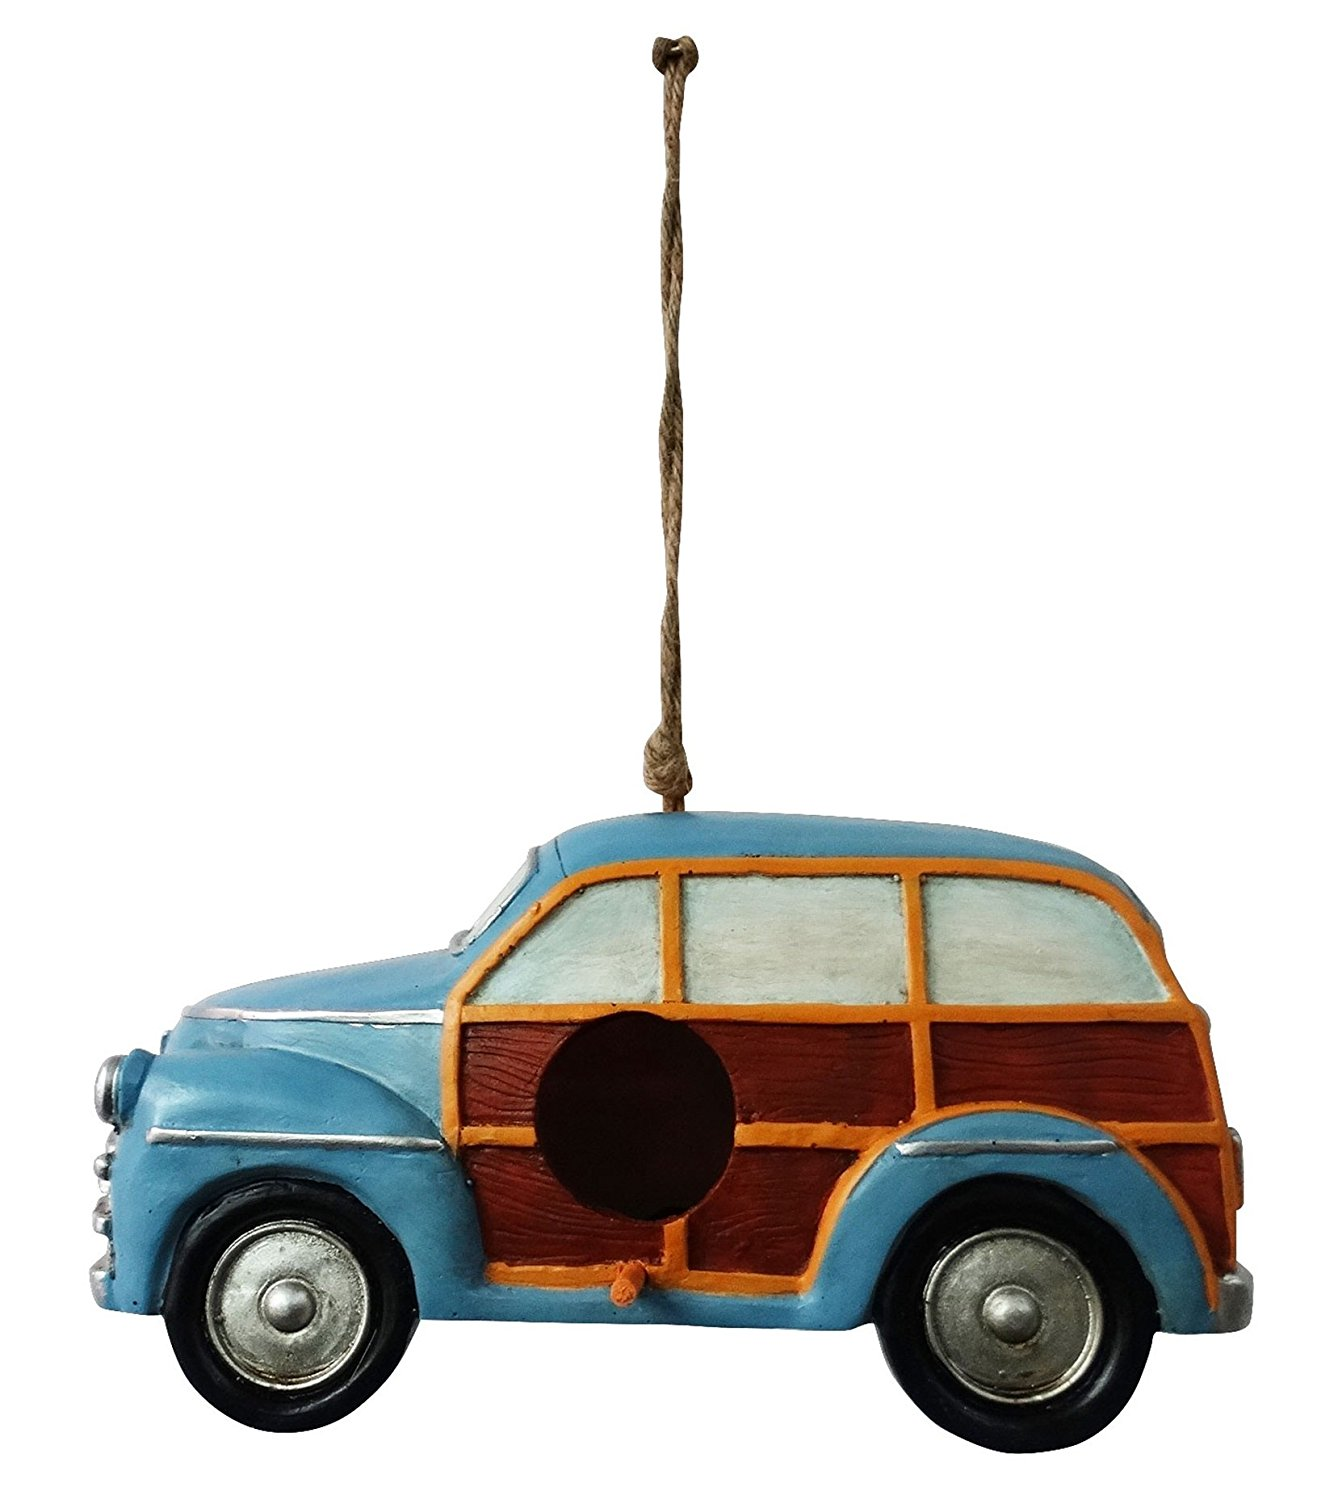 Hanging Blue Stationwagon Birdhouse by Alpine Corporation